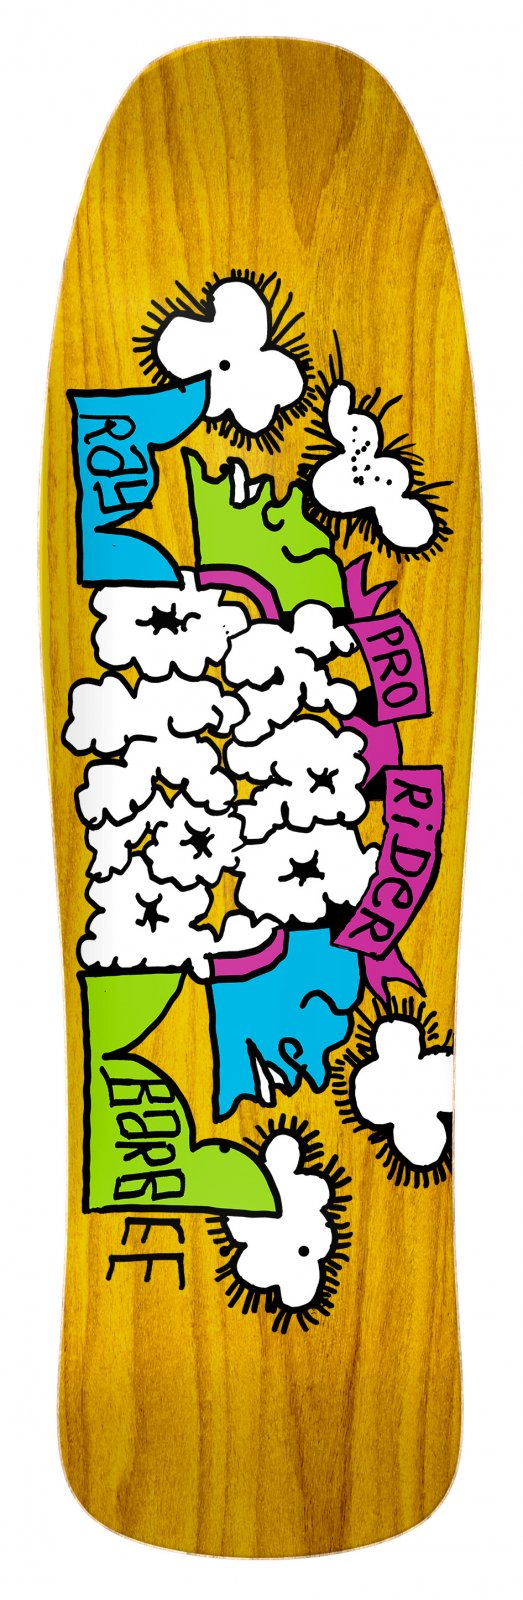 Krooked Barbee Clouds 9.5 x 31.75